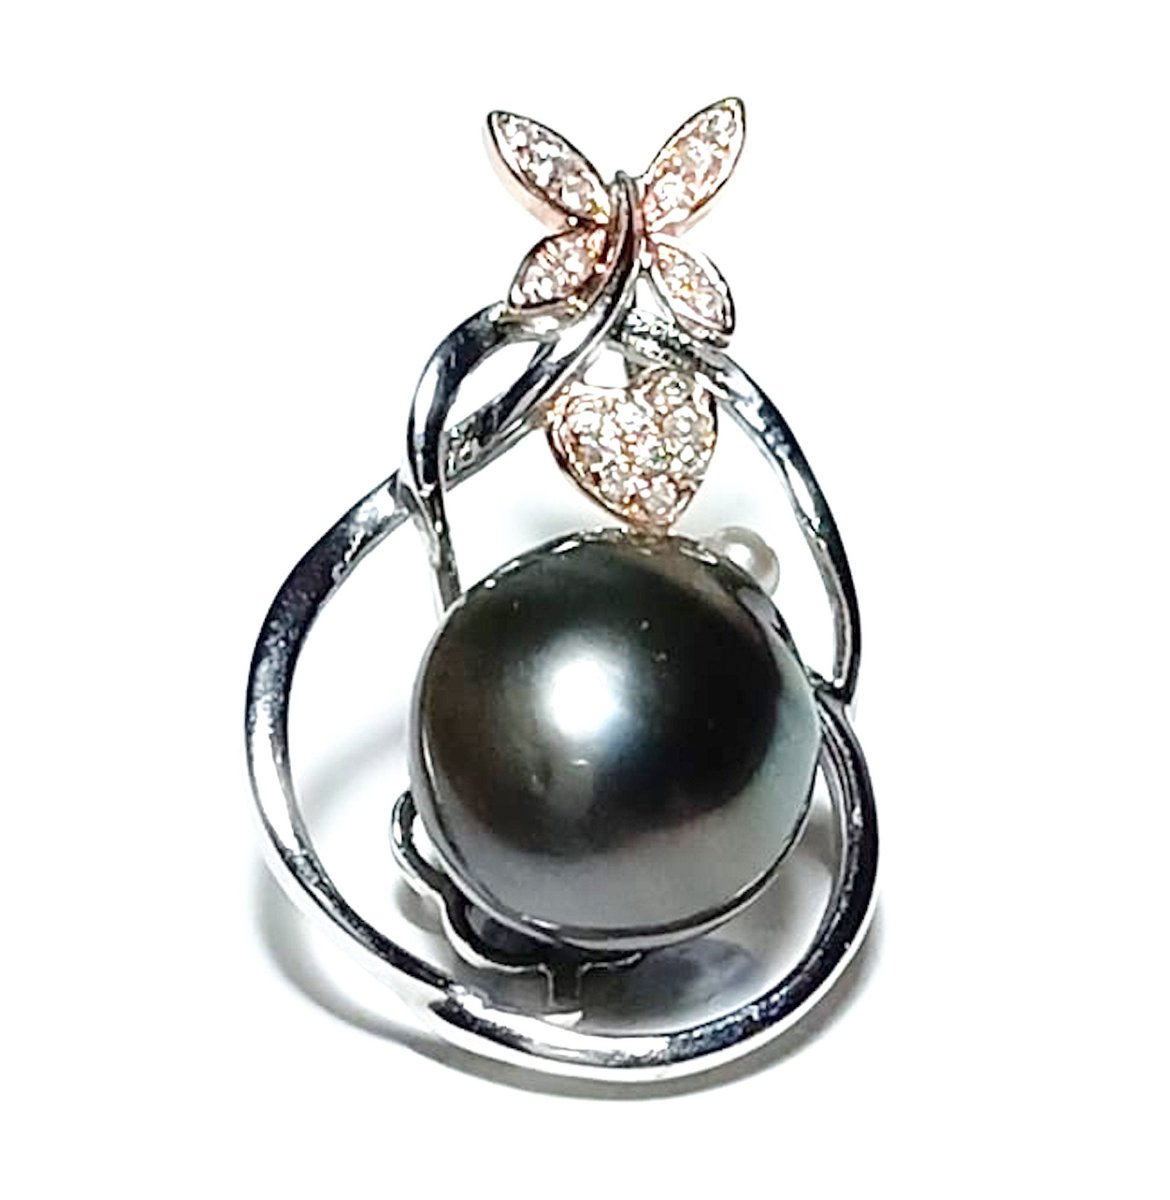 Excited to share the latest addition to my #etsy shop: Best Idea For Gift Her! Genuine Tahitian South Sea Natural Peacock Gray Green 11.2 x 13.3mm Baroque Cultured Pearl Inspiration Pendant  #no #edwardian #silver #girls #pearl #green #rainbow #l